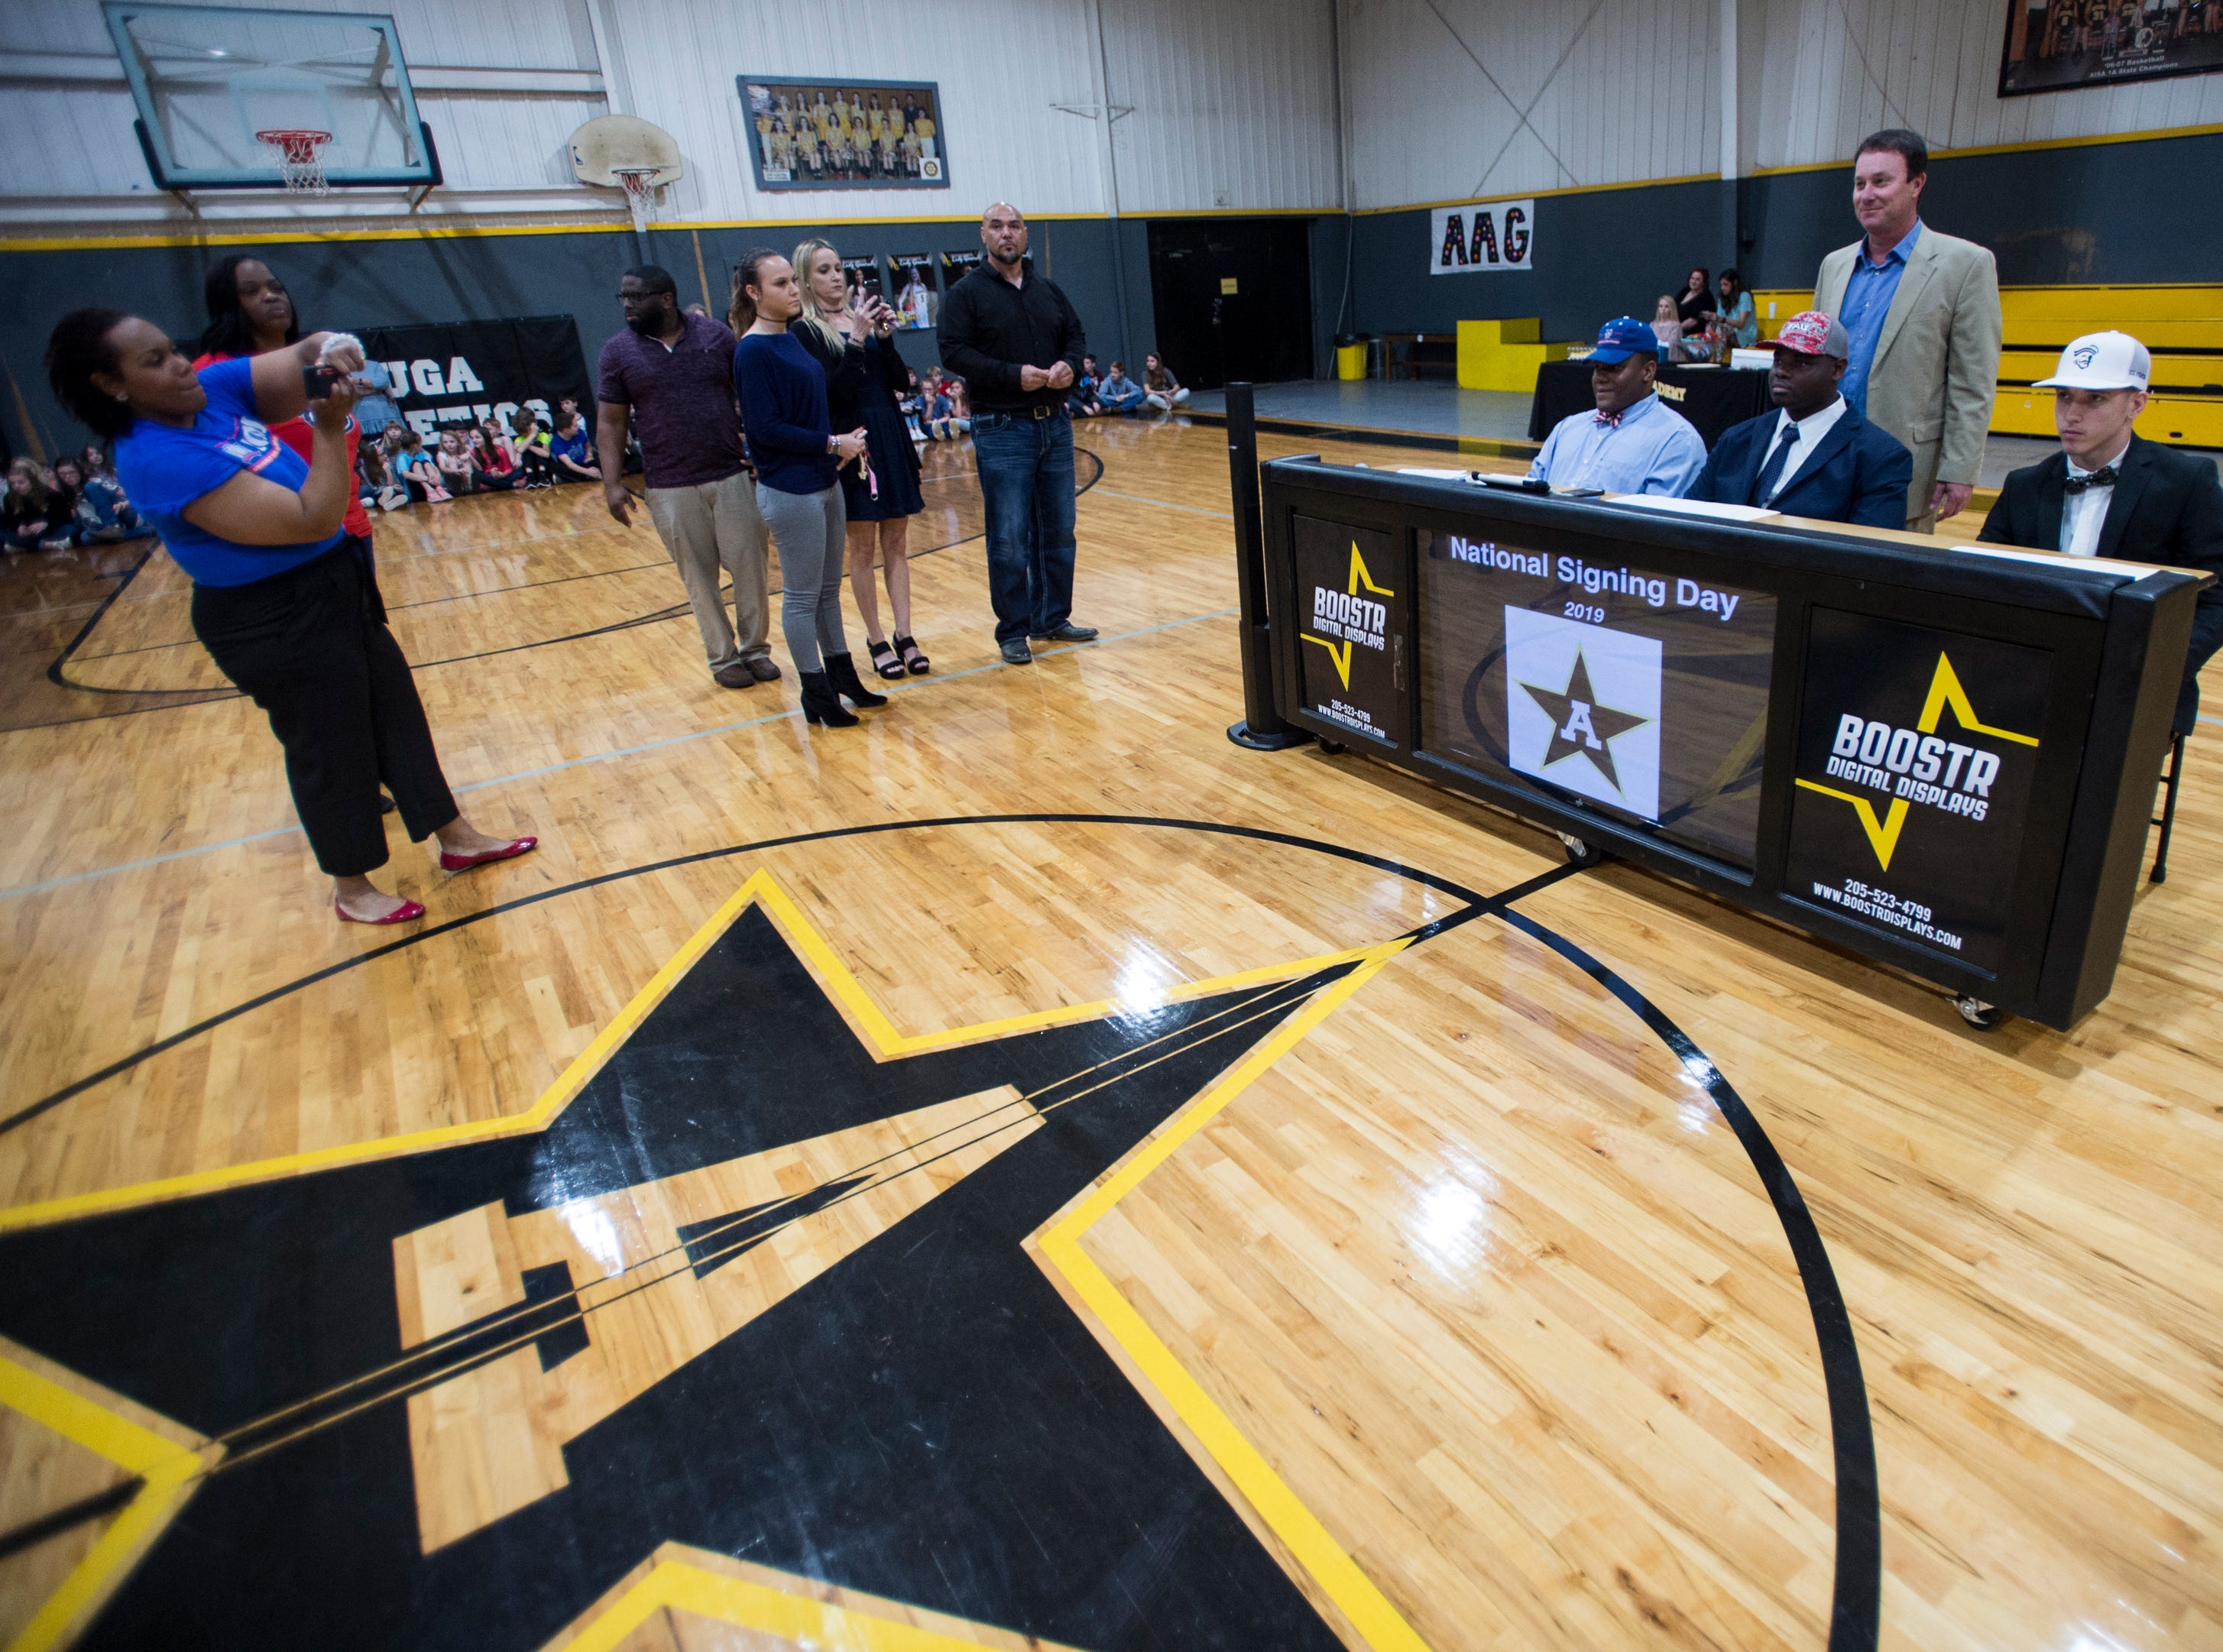 Coach Bobby Carr poses for a picture with his players during signing day at Autauga Academy Prattville, Ala., on Wednesday, Feb. 6, 2019.